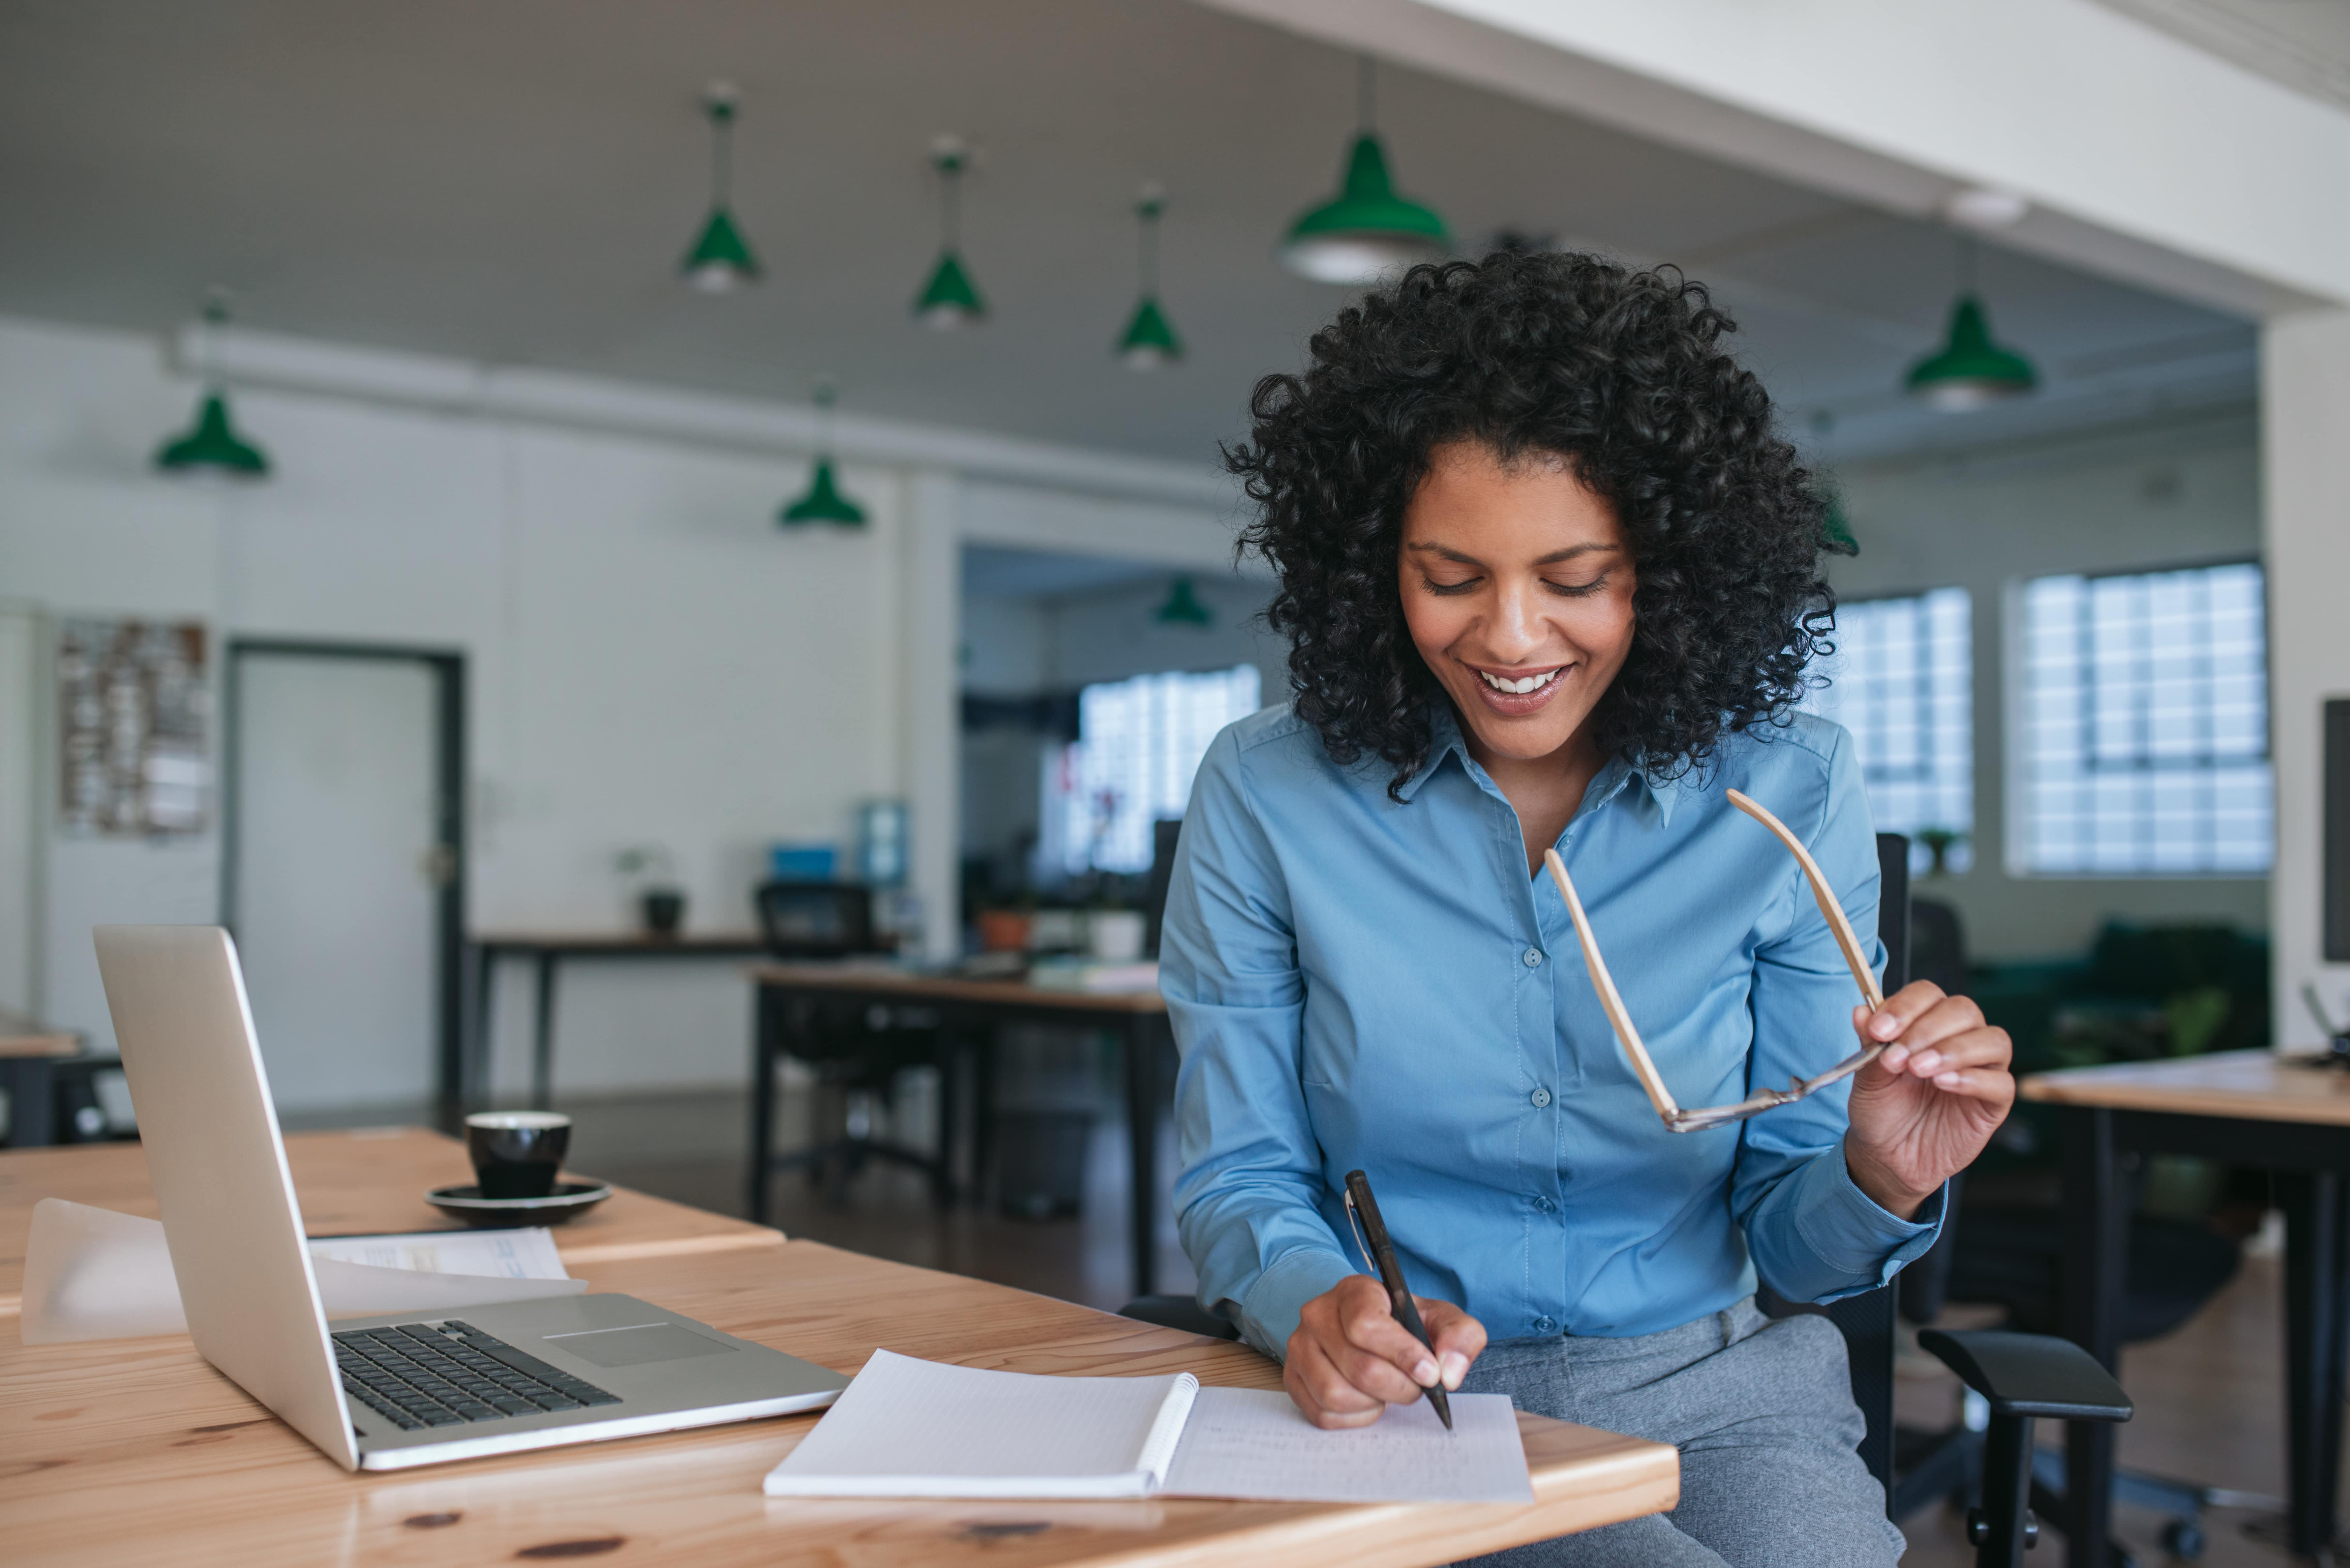 How to obtain work authorization when your spouse has an H-1B Visa